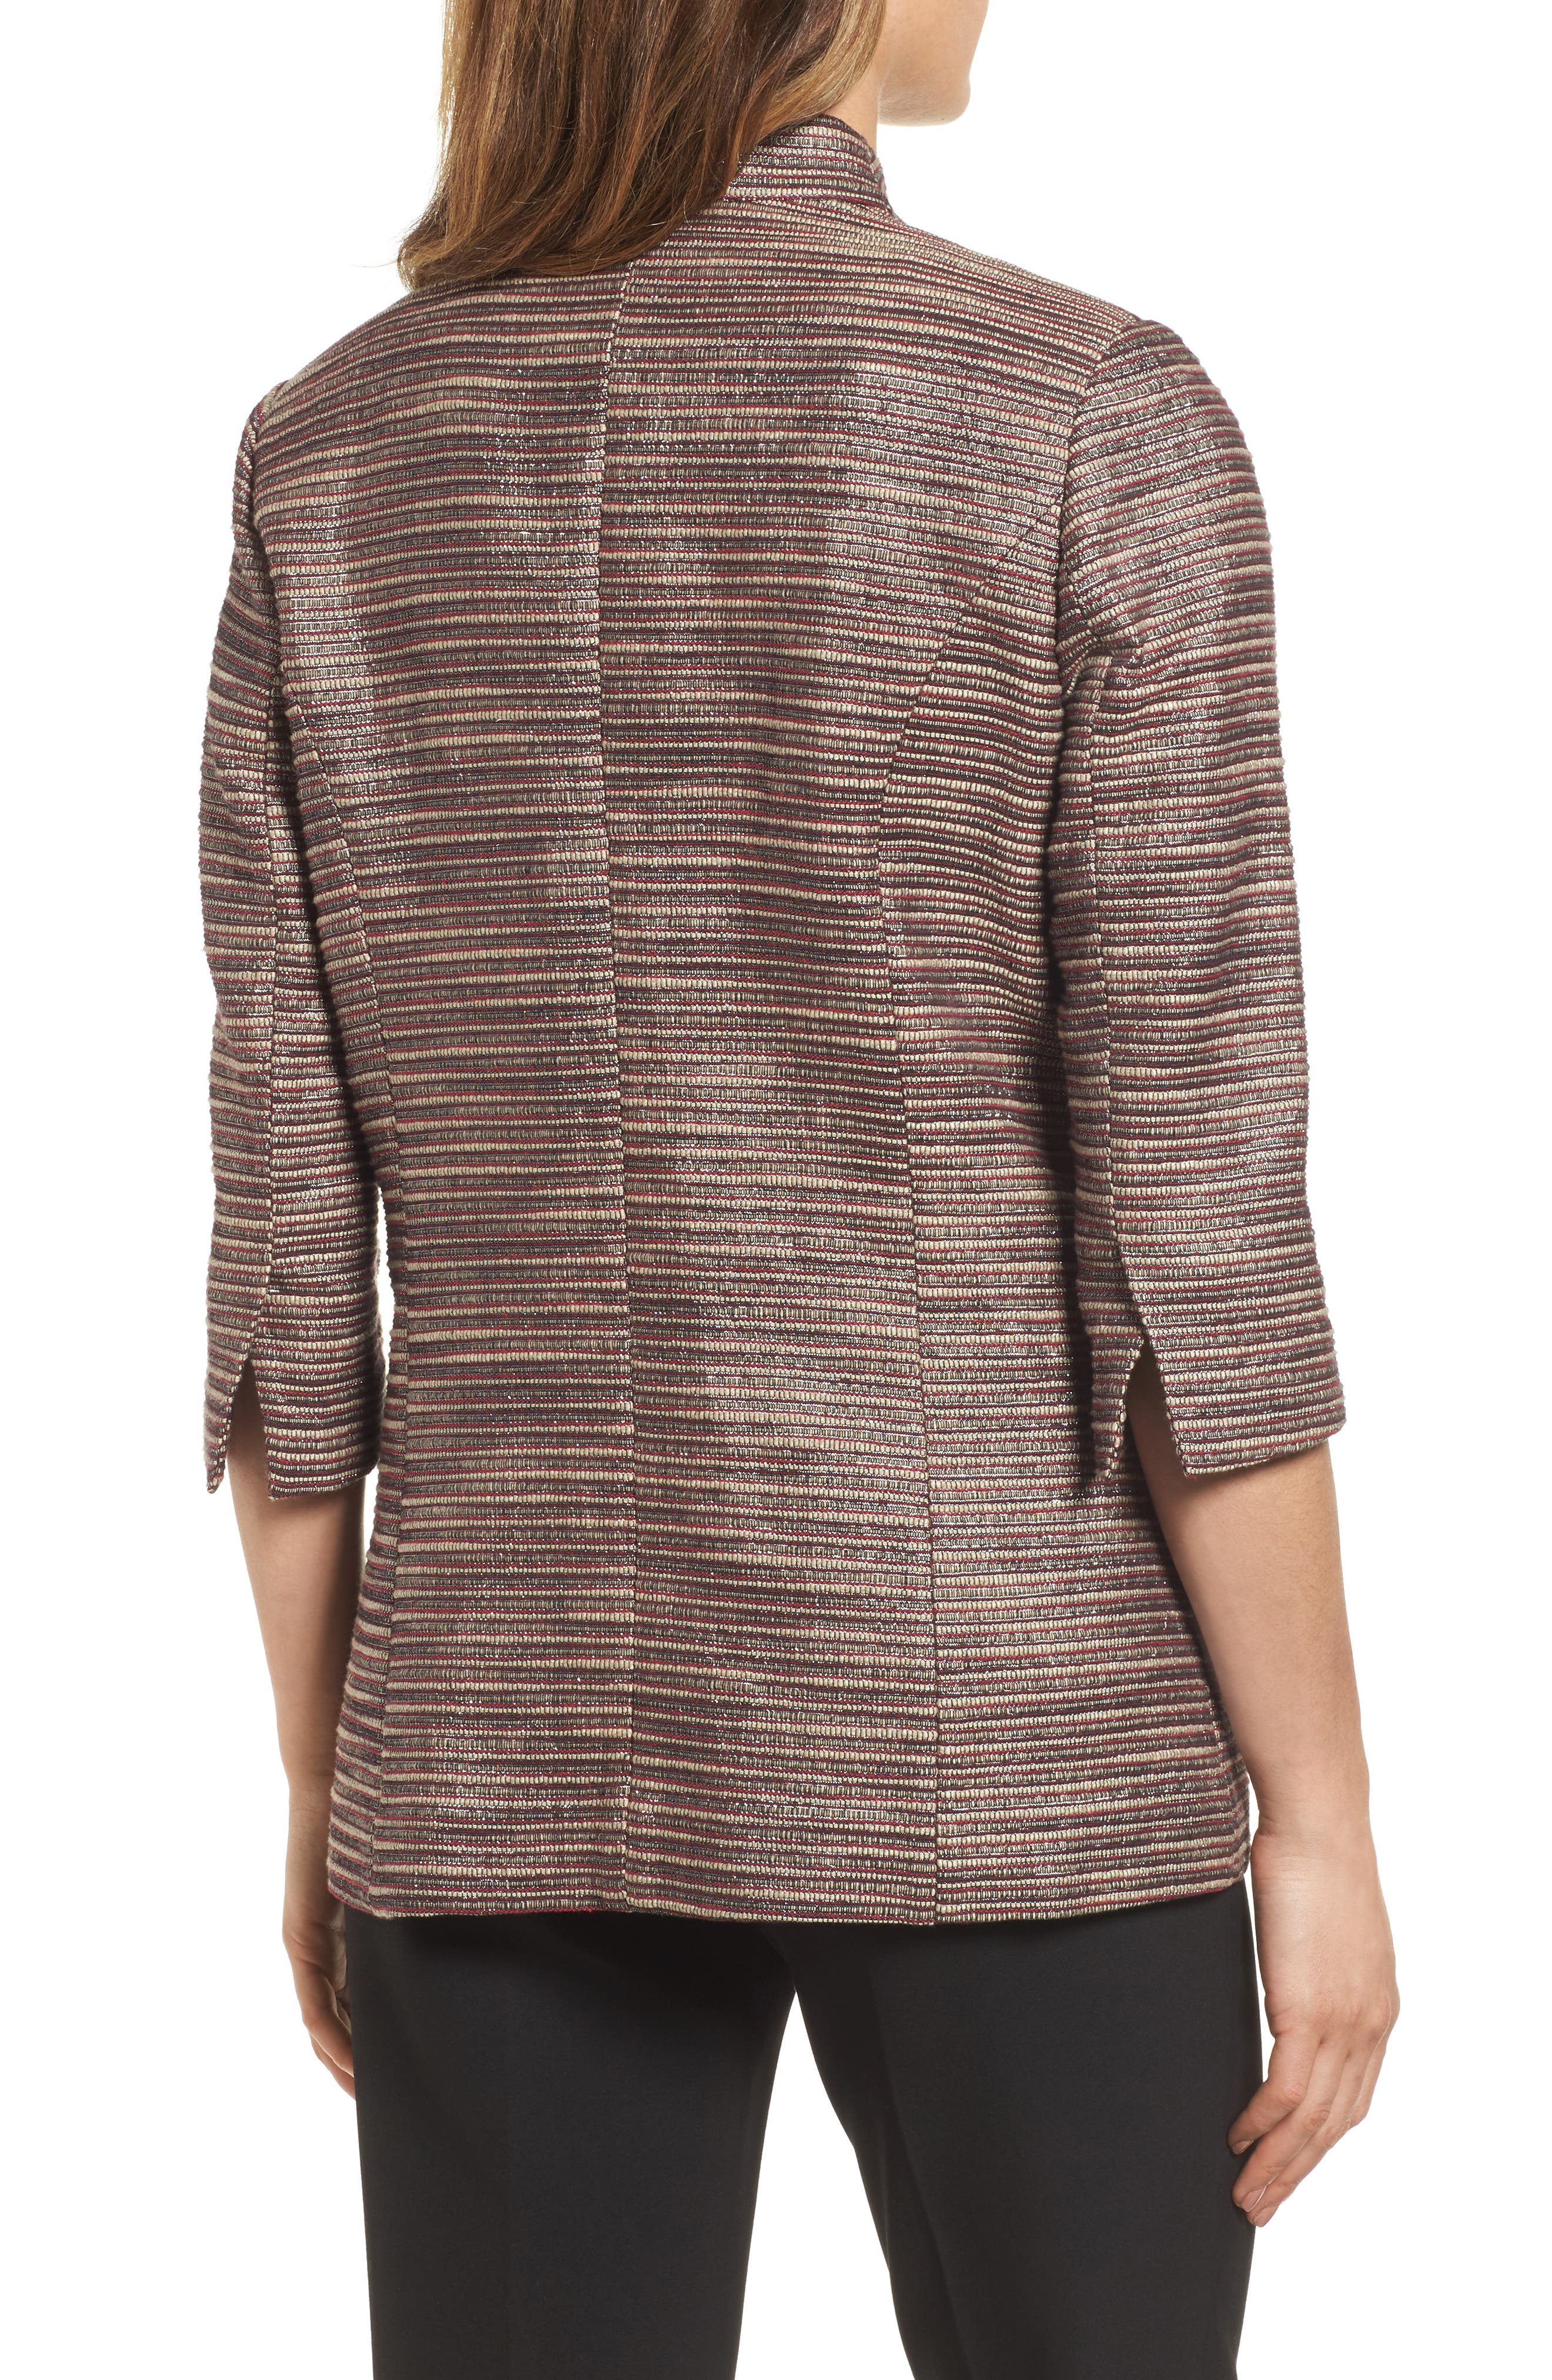 Alternate Image 2  - Ming Wang Ribbed Metallic Tweed Jacket